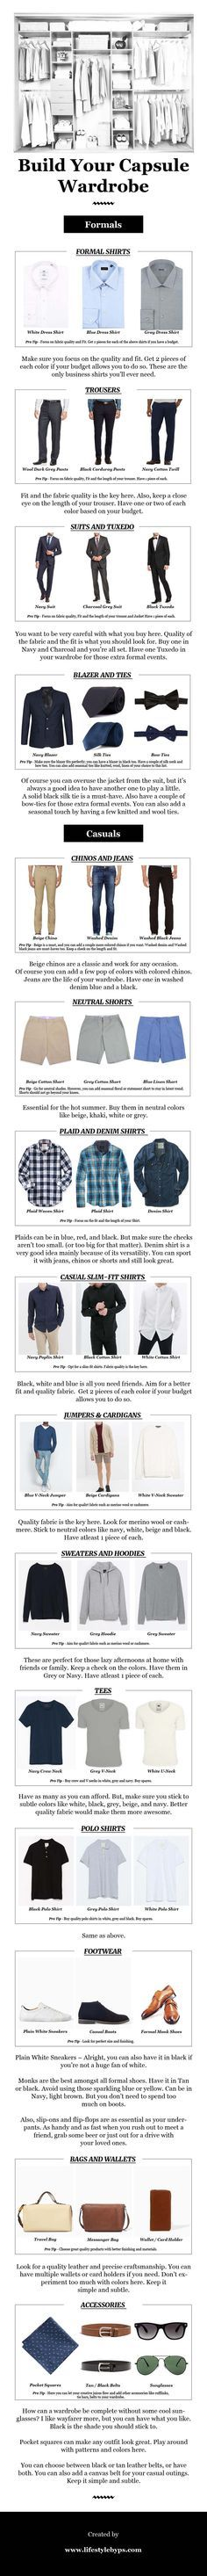 Build Your Capsule Wardrobe from the ground up #Infographic #infografía